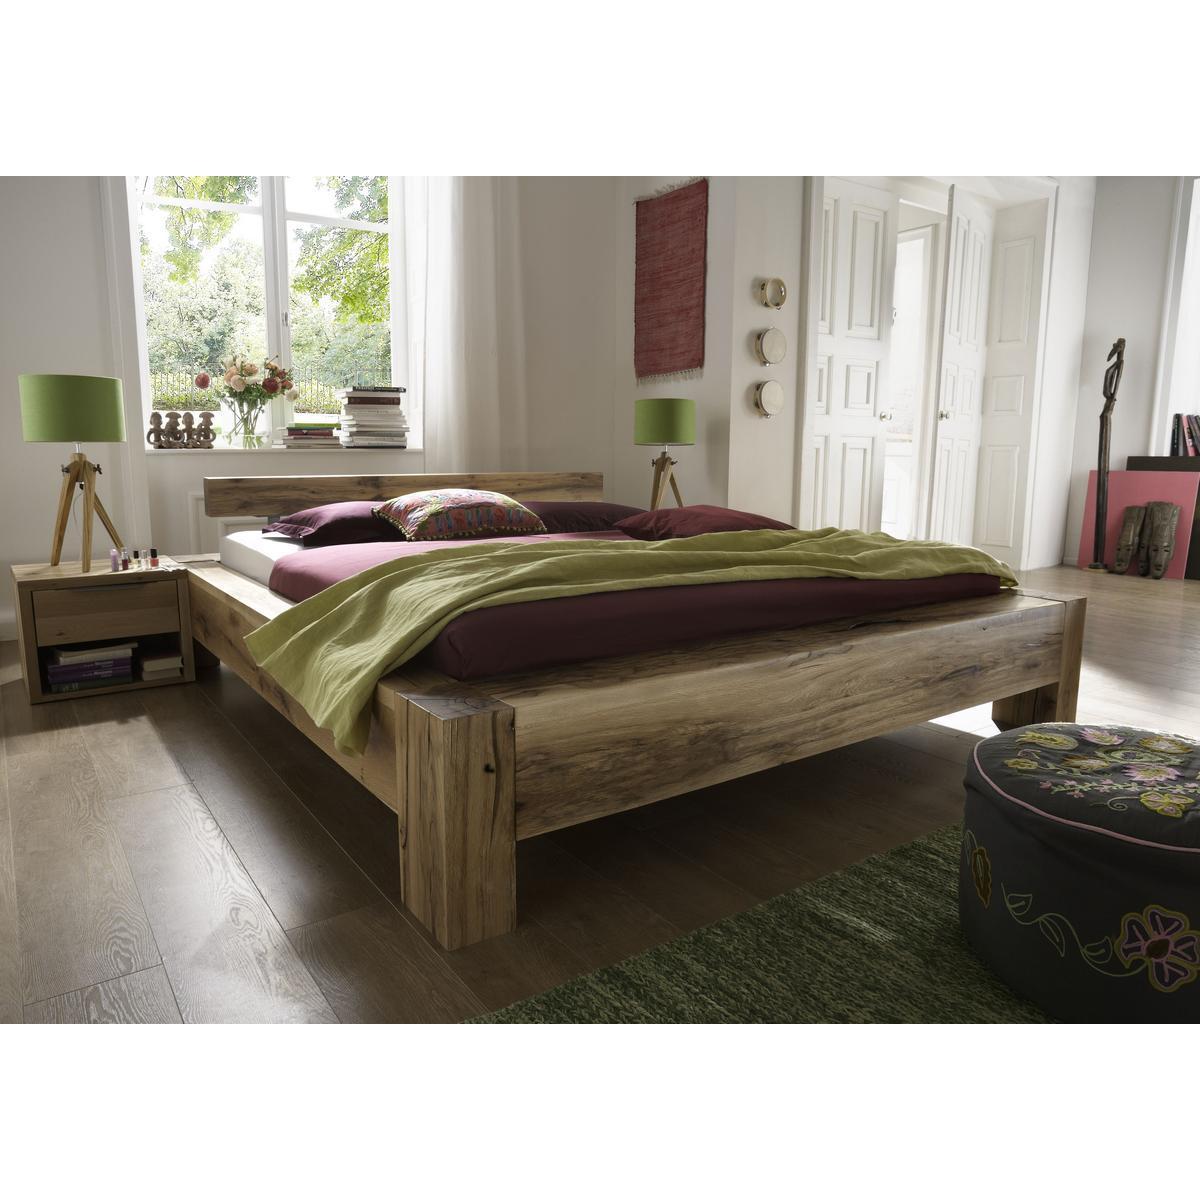 vollholz balkenbett 160x200 heavy sleep alba wildeiche massiv natur ge lt 2216 28 2120 3. Black Bedroom Furniture Sets. Home Design Ideas